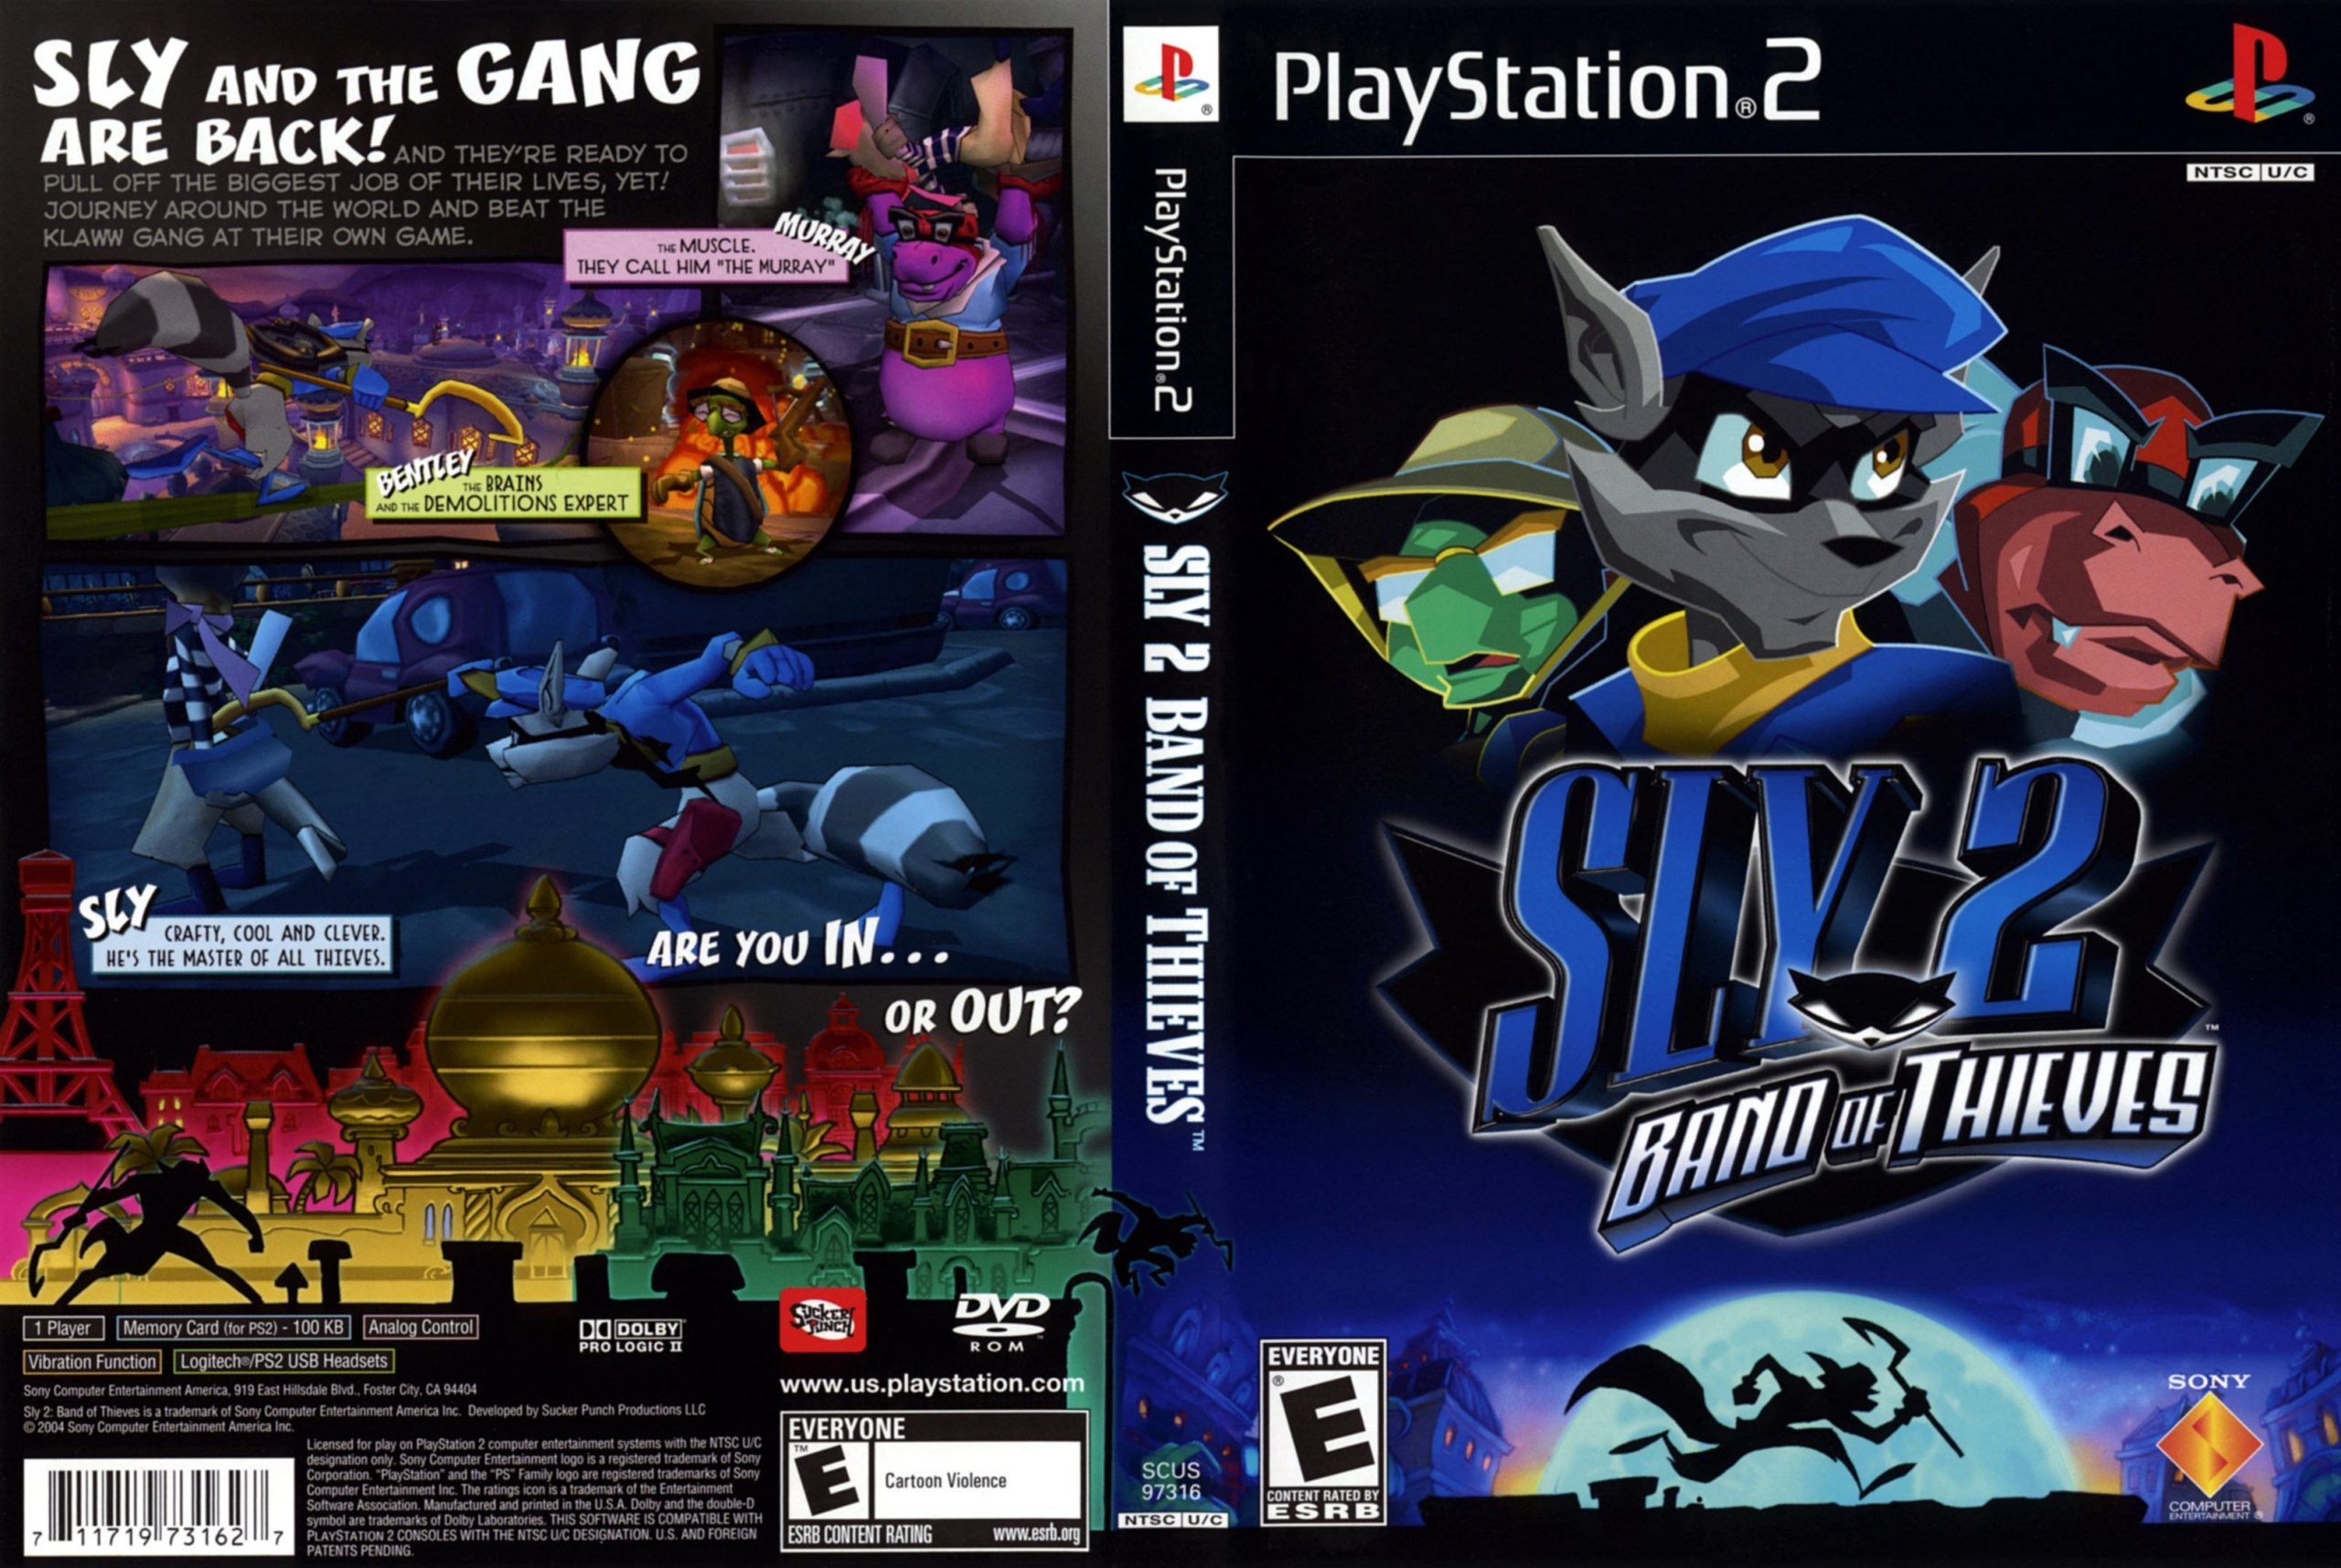 Sly 2: Band of Thief